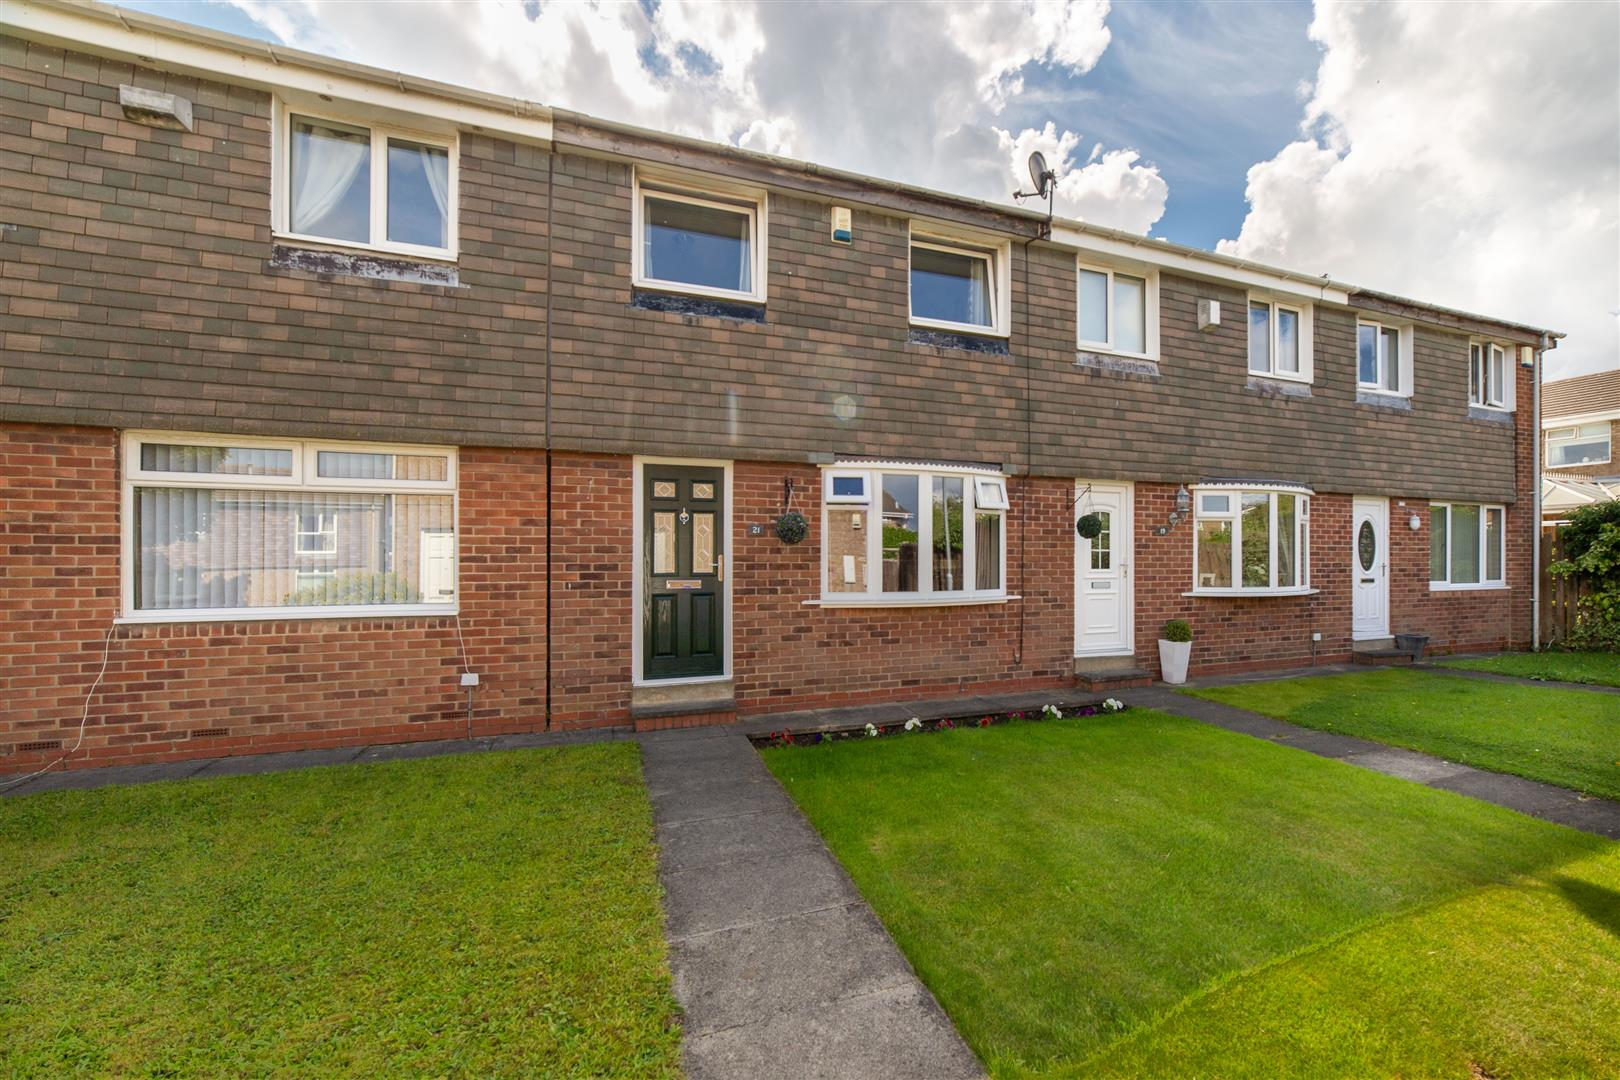 3 bed terraced house for sale in Oswestry Place, Cramlington - Property Image 1